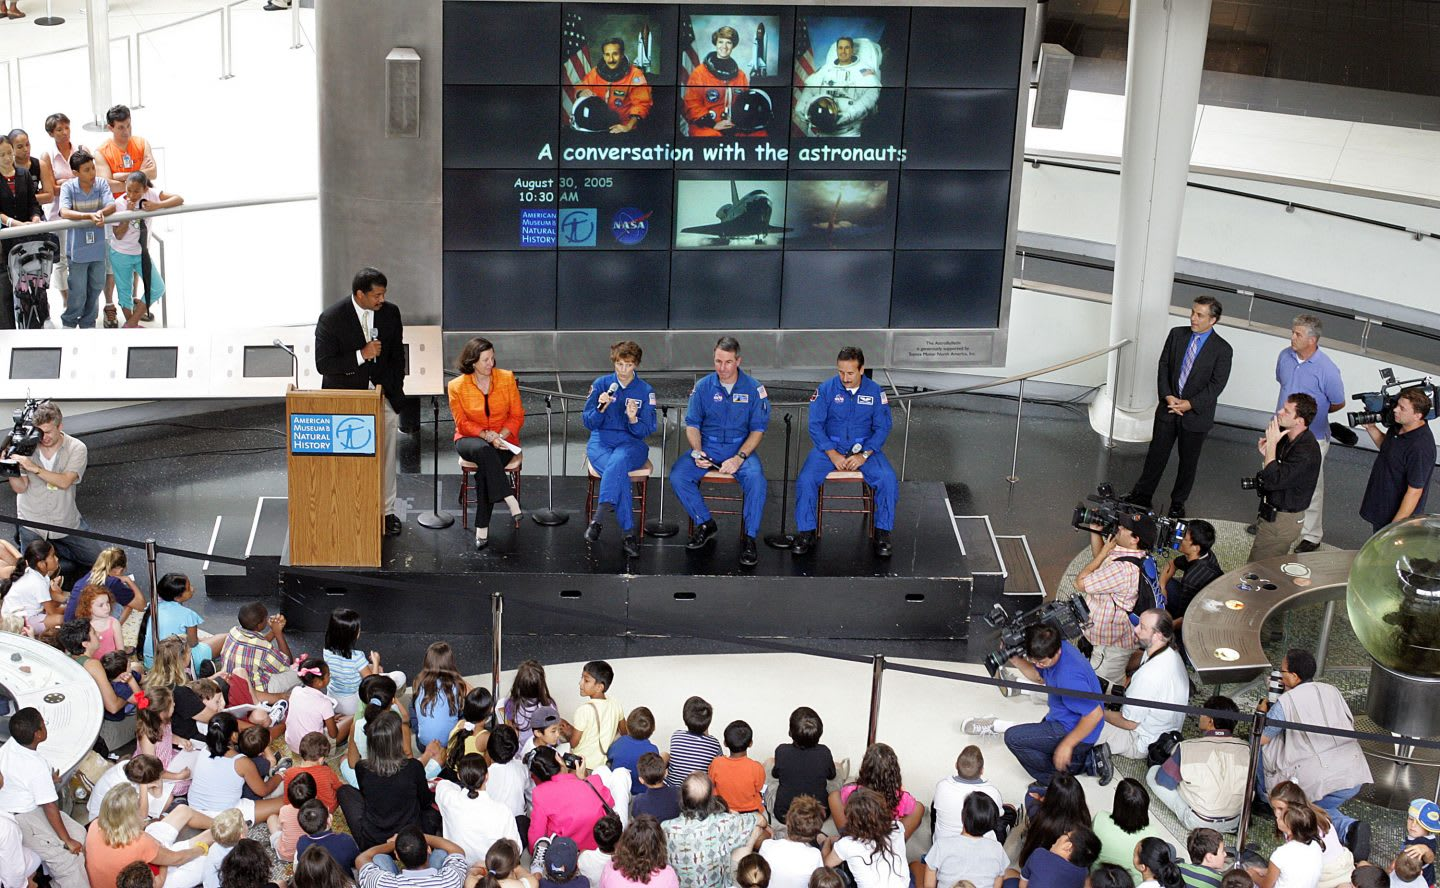 NASA astronauts in a talk round sitting on a podium in front of a crowd. diversity, innovation, creativity, team work, GamePlanA